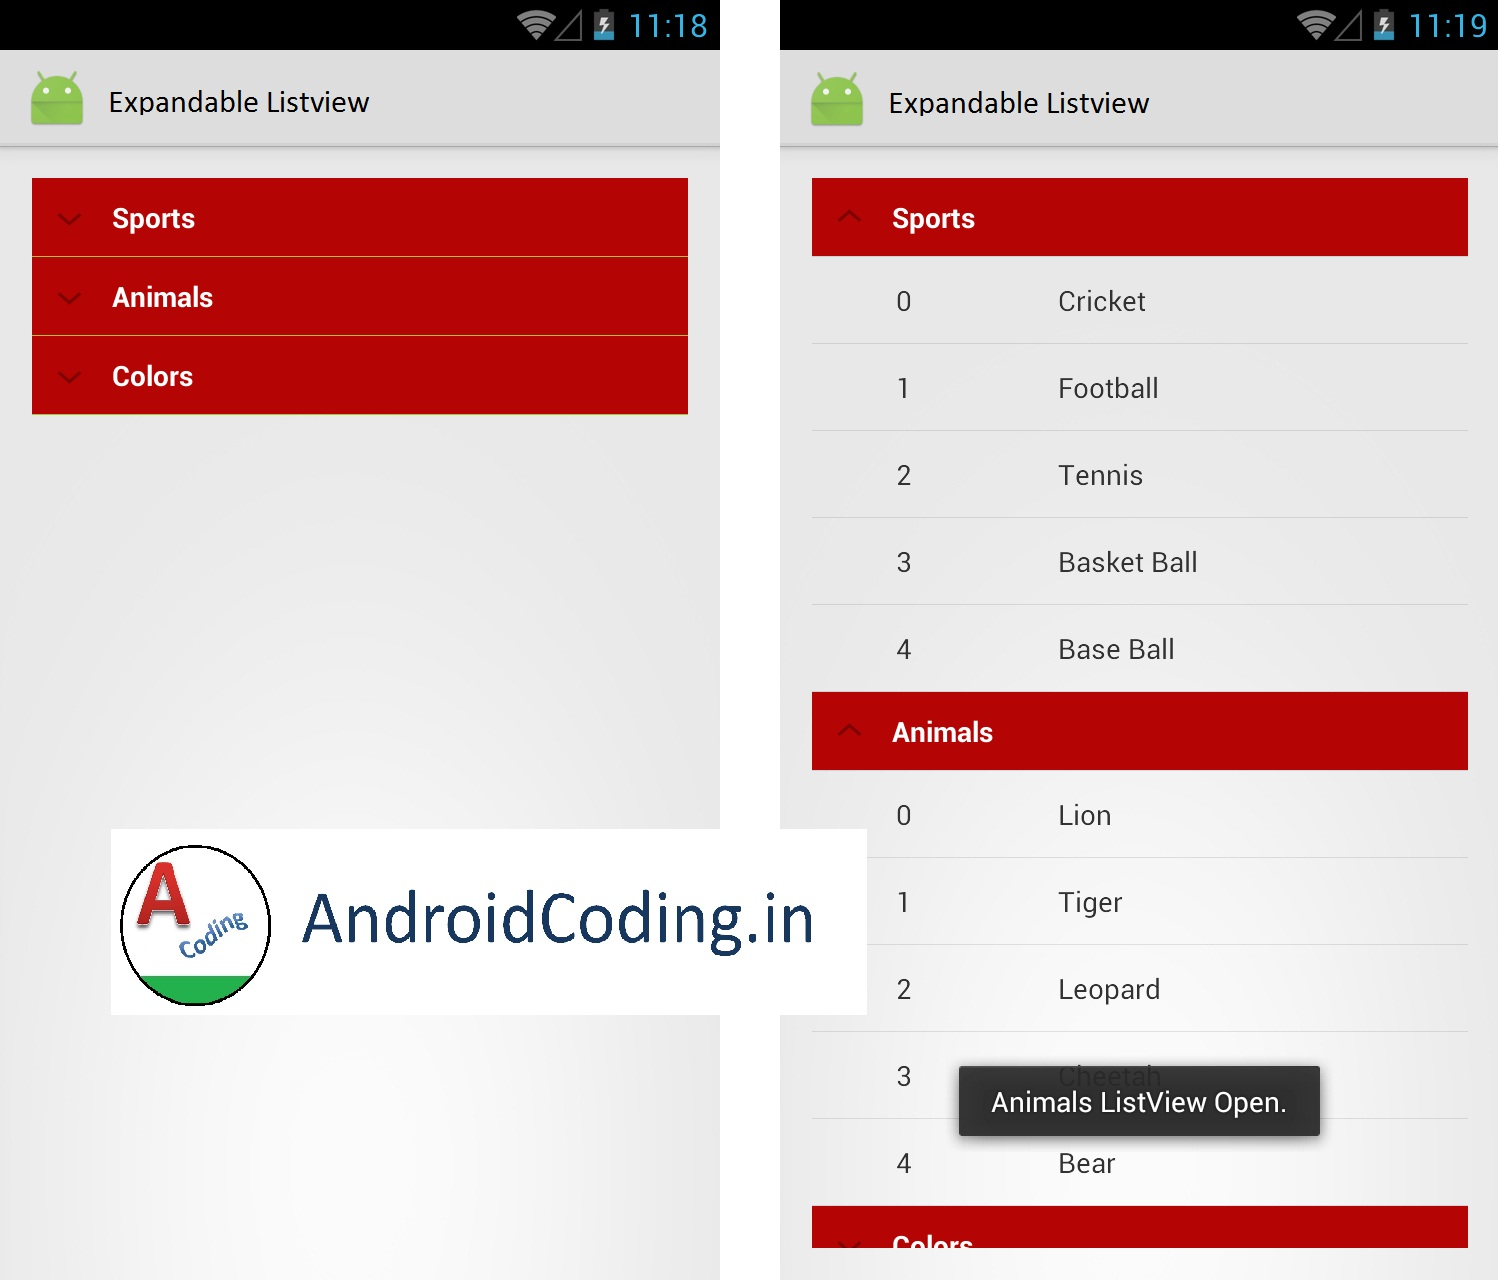 Android Tutorial on Expandable Listview